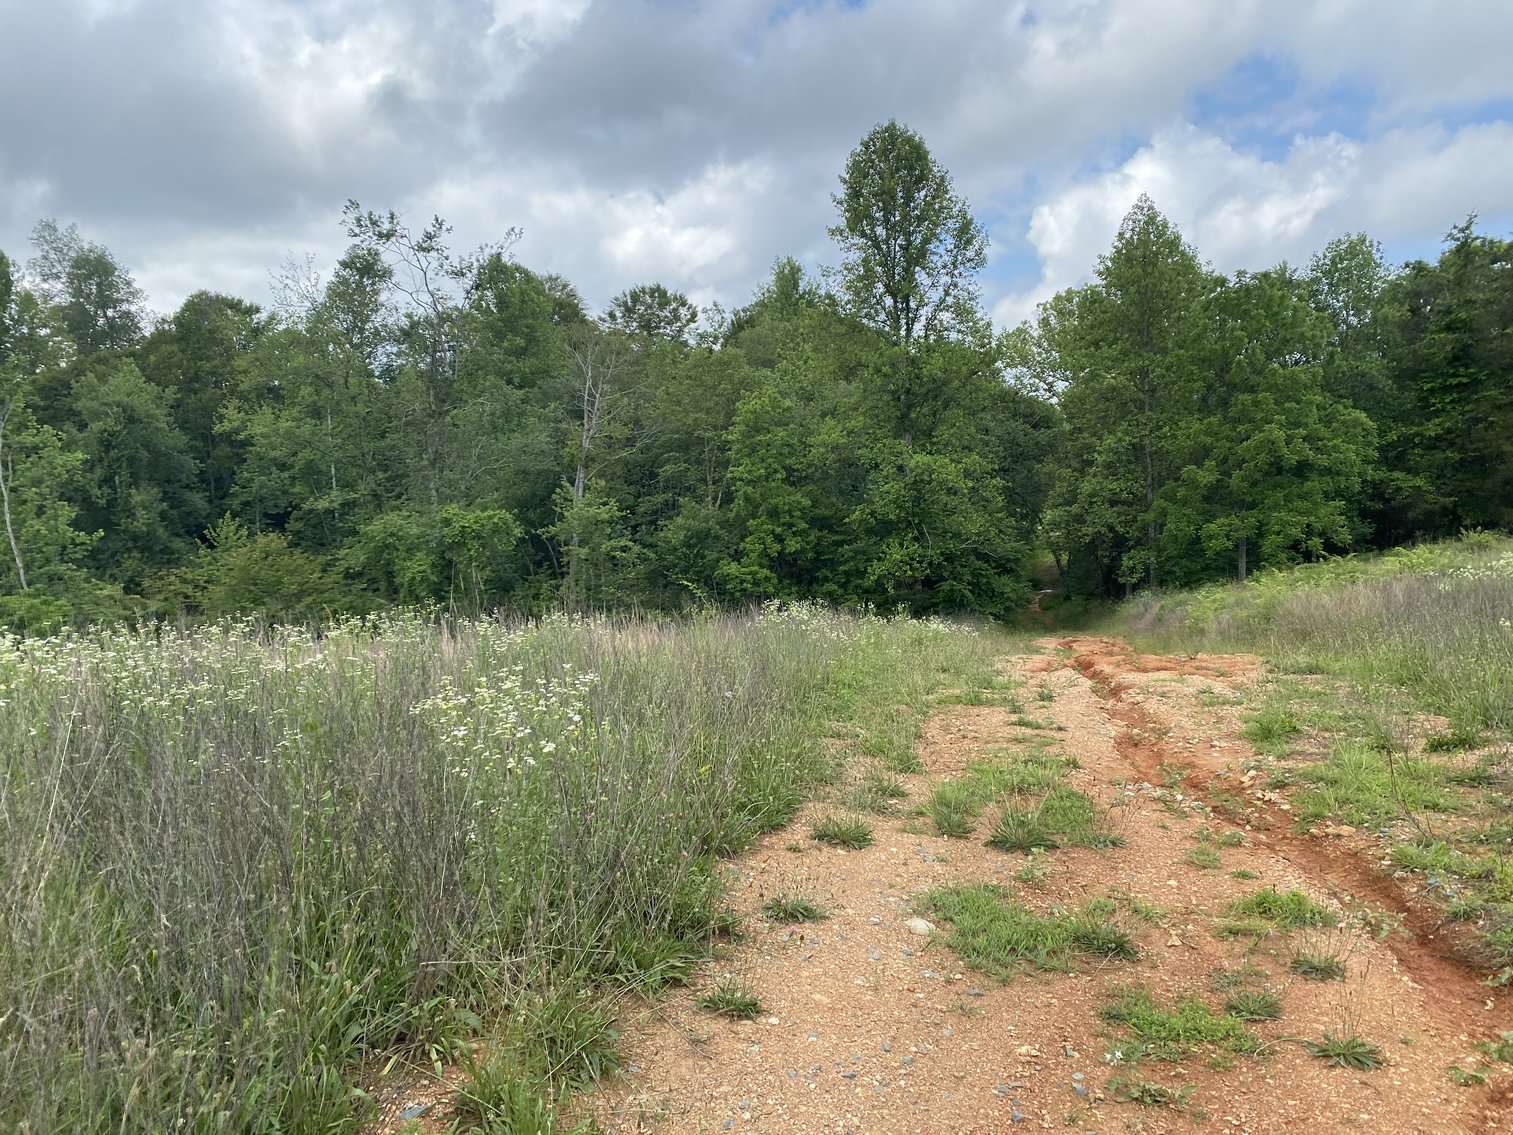 Image for 6 Tracts of Contiguous Raw Land Totaling 267 +/- Acres in Albemarle & Louisa Counties